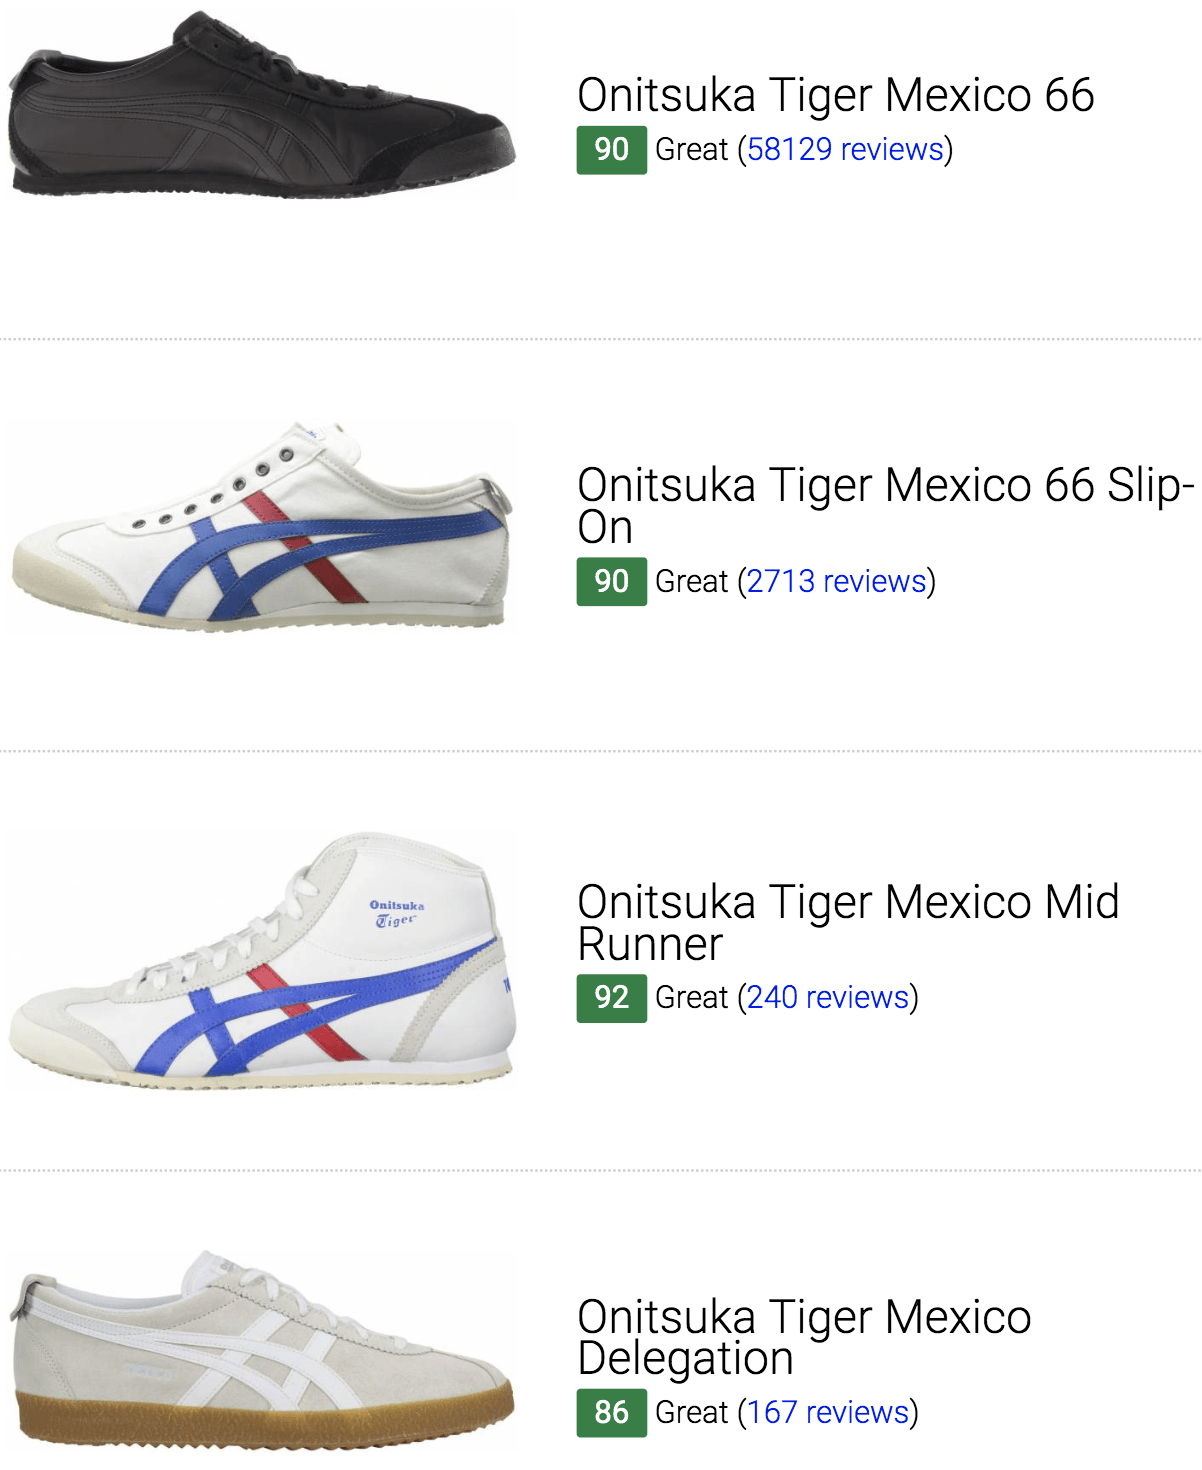 new style c2874 6aab0 12 Best Onitsuka Tiger Mexico Sneakers (September 2019 ...